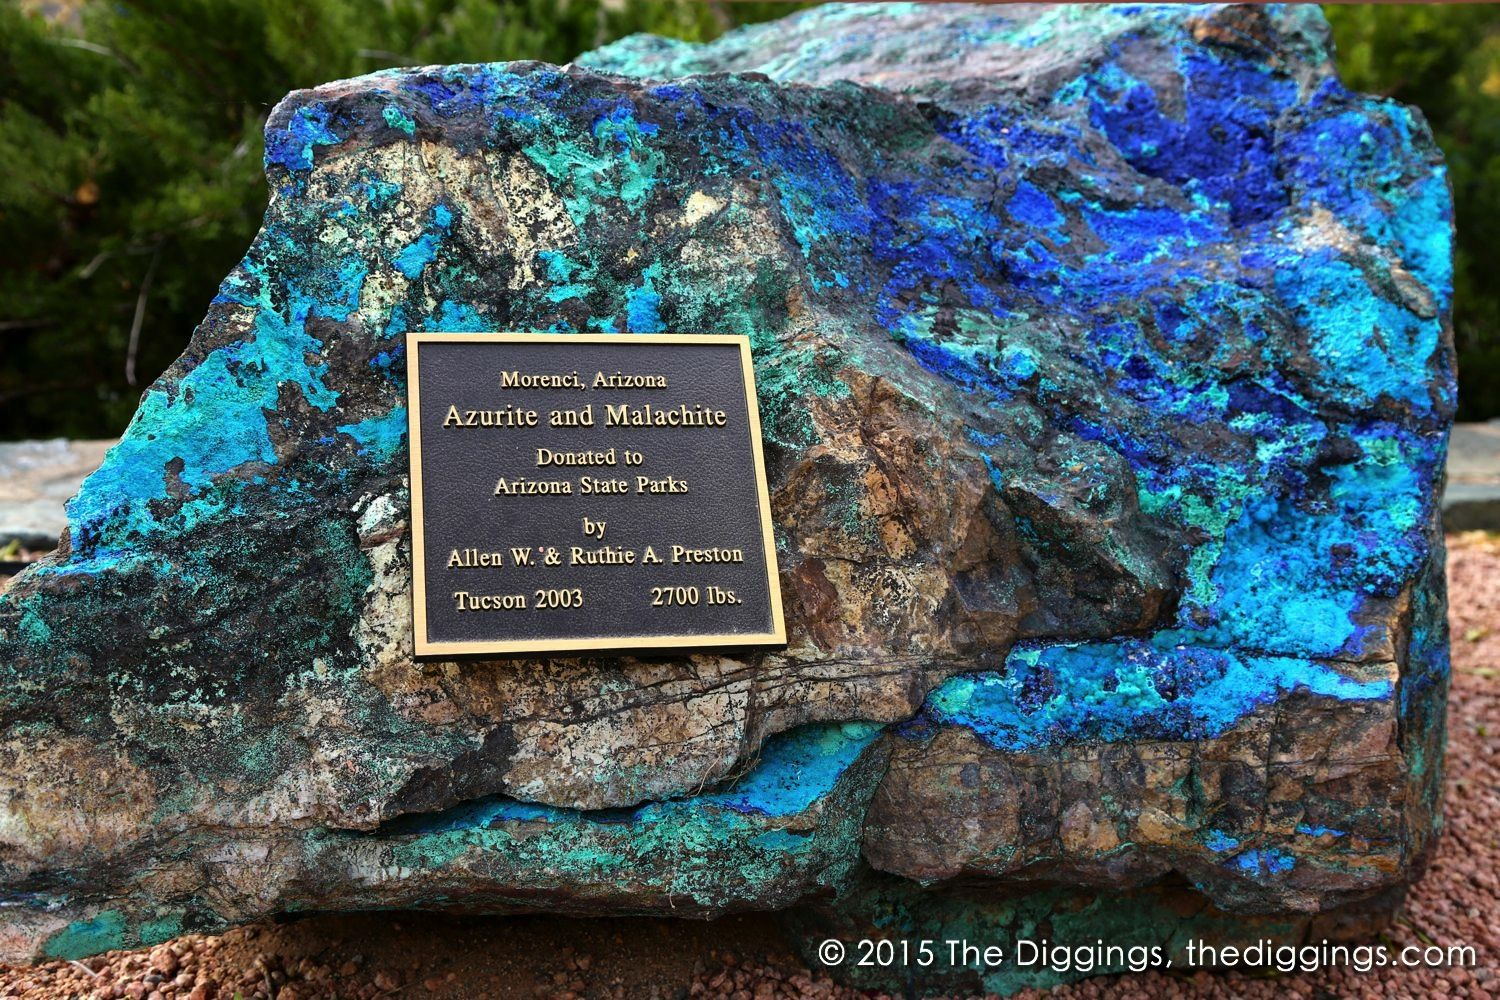 Azurite and Malachite at the Jerome State Historic Park:  http://blog.thediggings.com/jerome-state-historic-park/